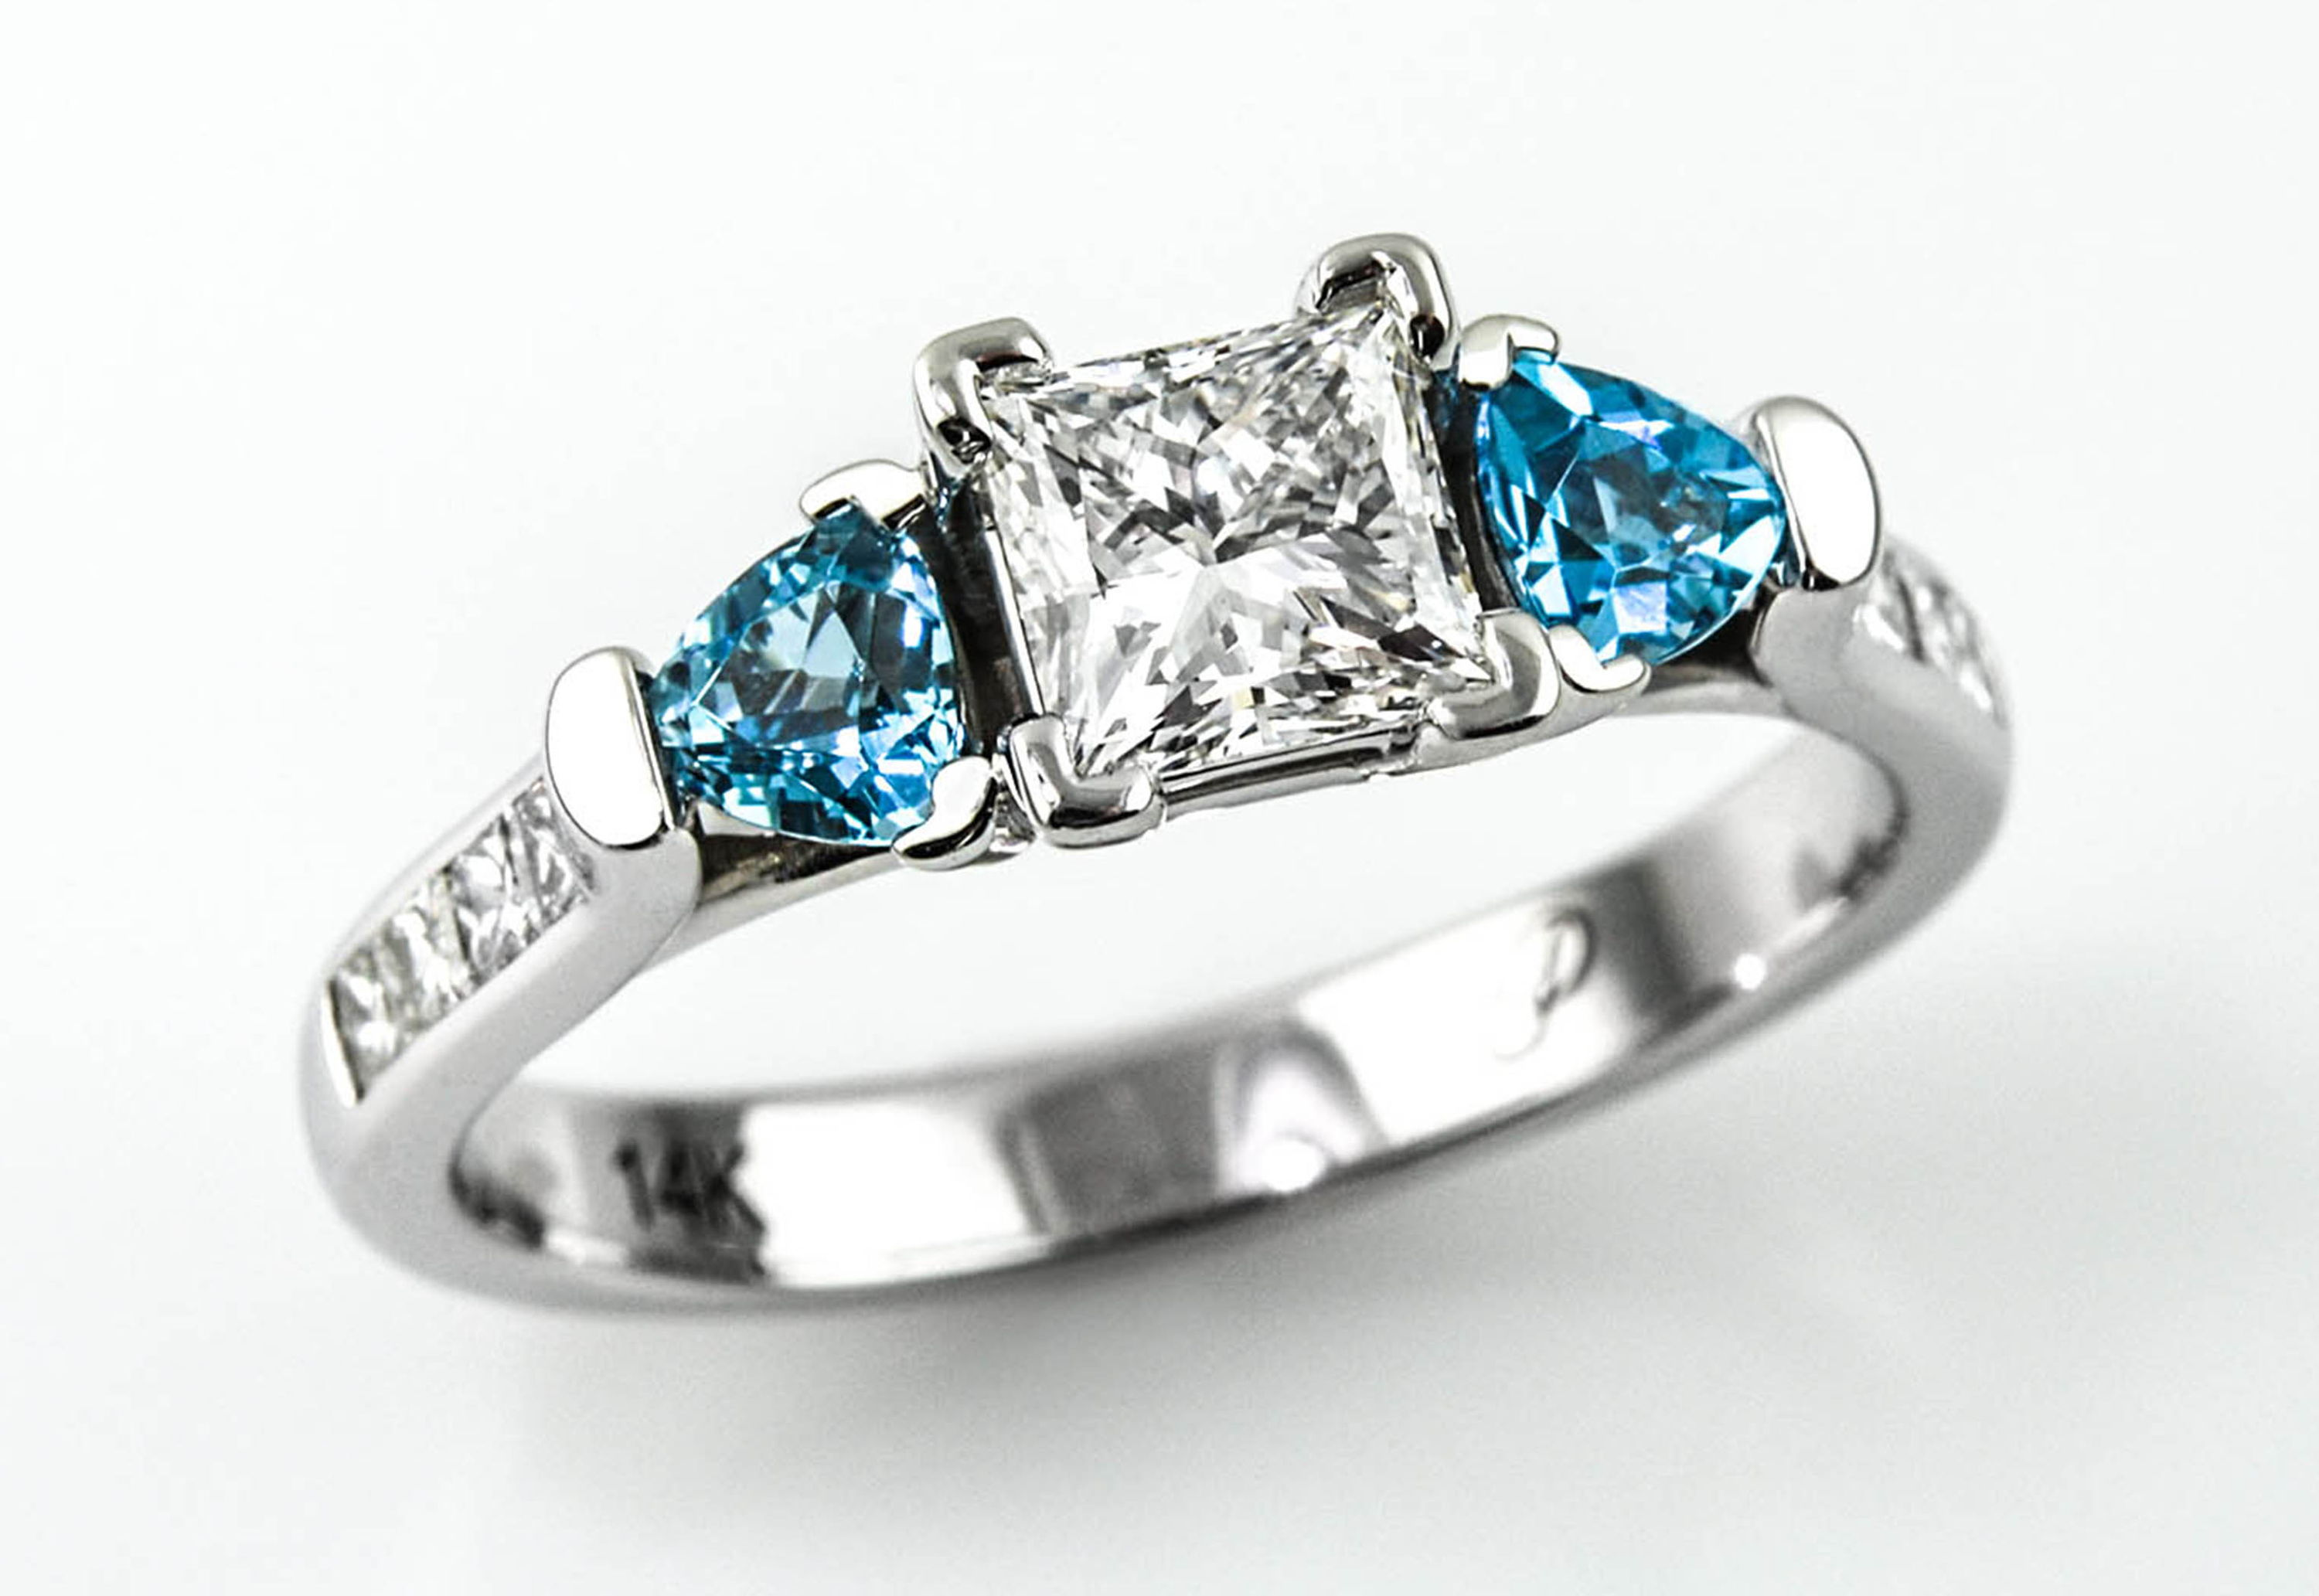 love ring dermal are story of allure in diamond piercing finger rings piercings trending engagement lieu